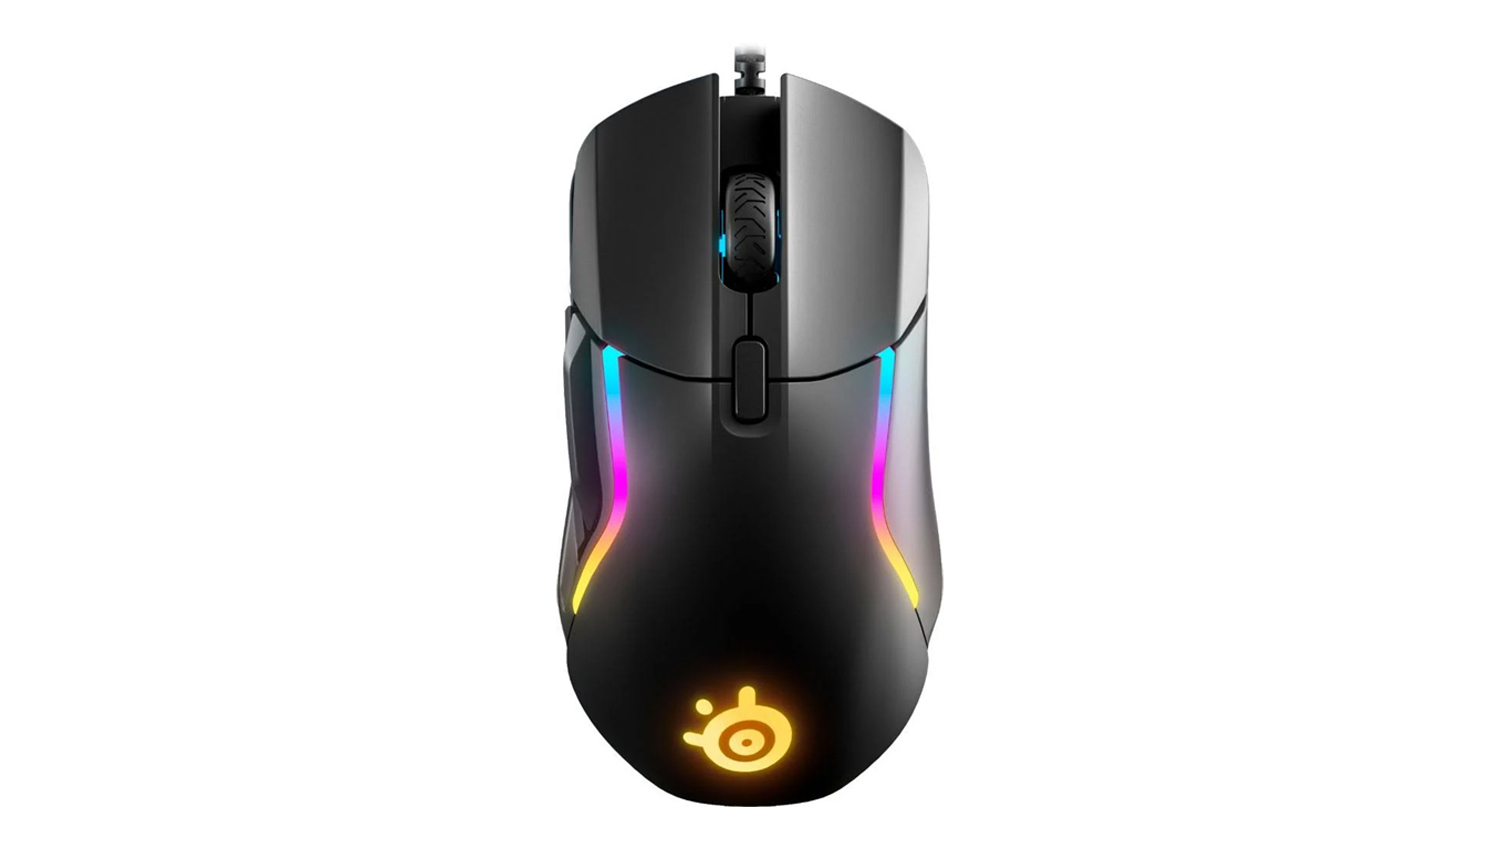 The Steelseries Rival 5 is nearly flawless in its performance.